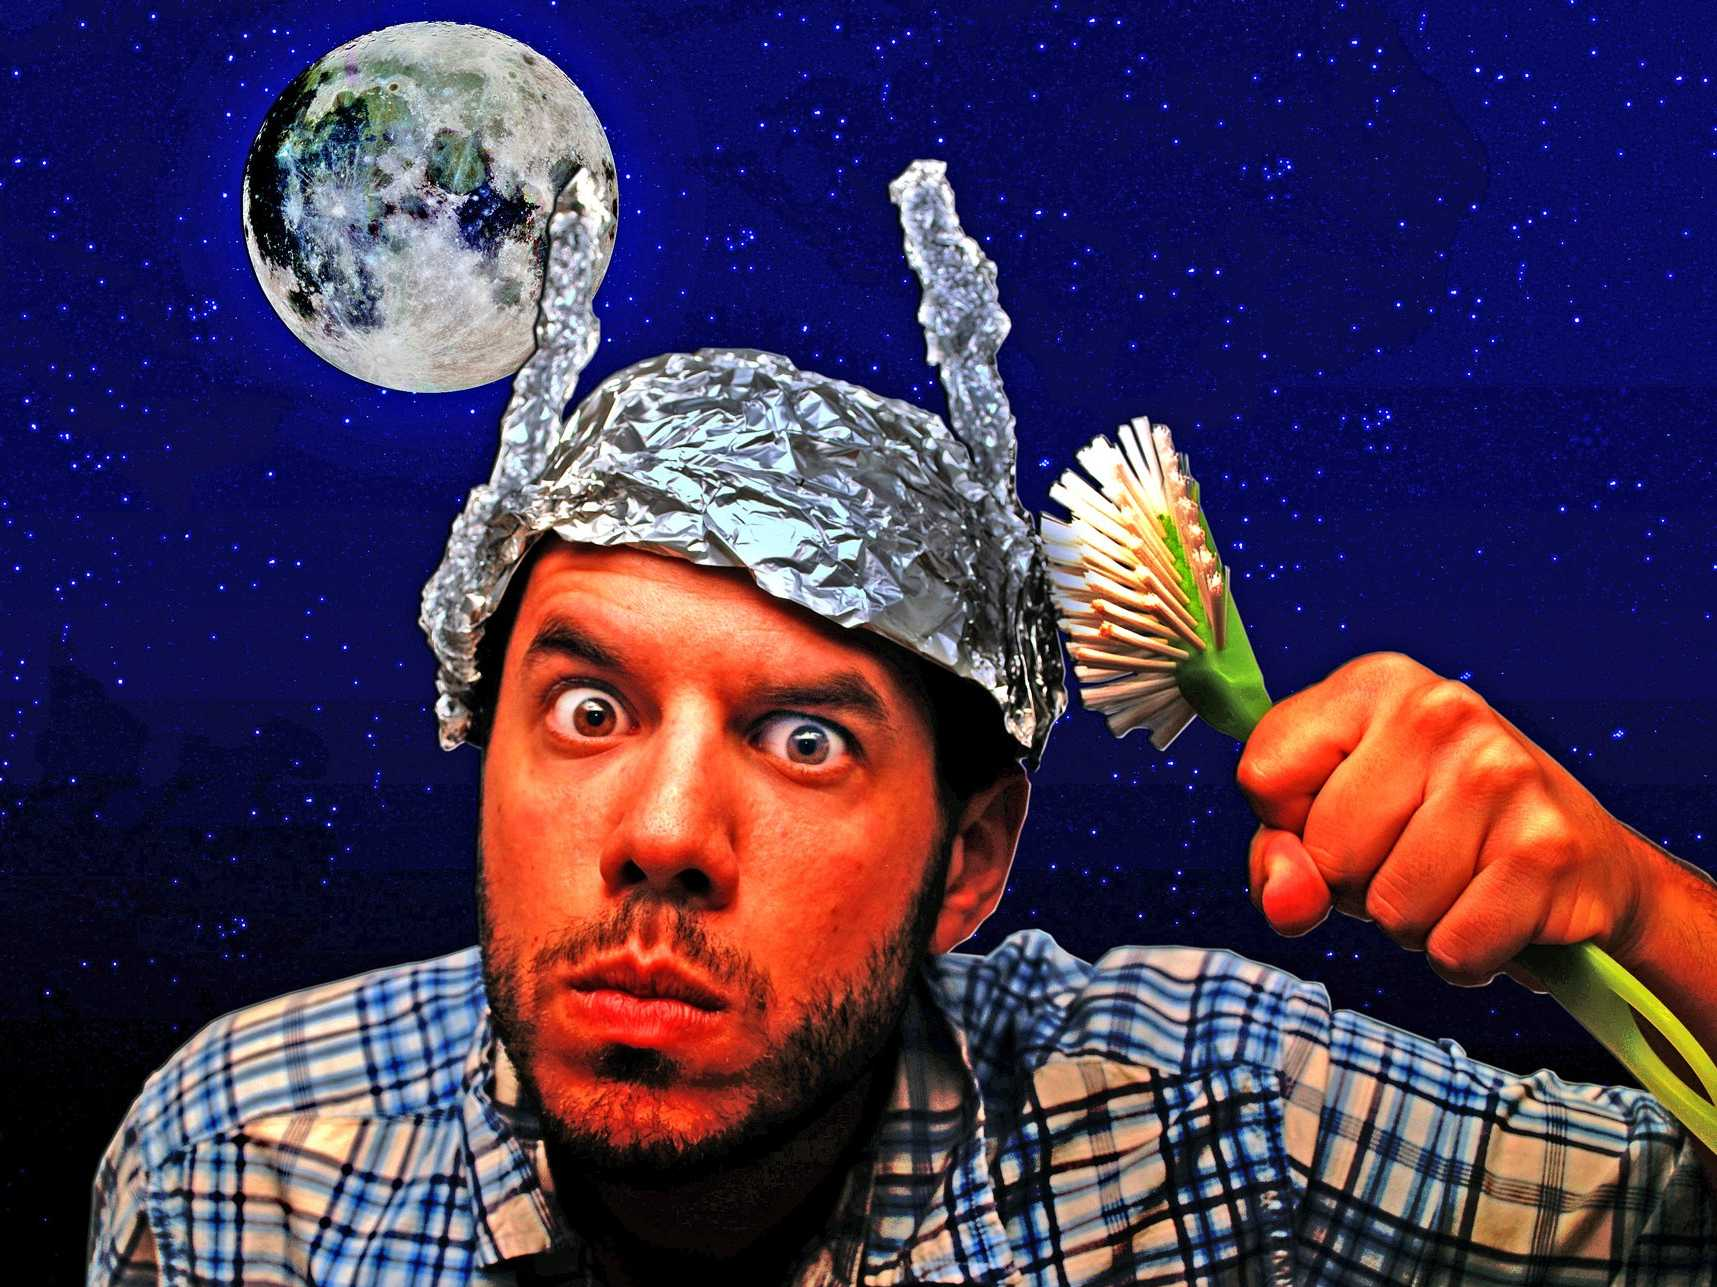 7 conspiracy theories that aren't actually conspiracy theories